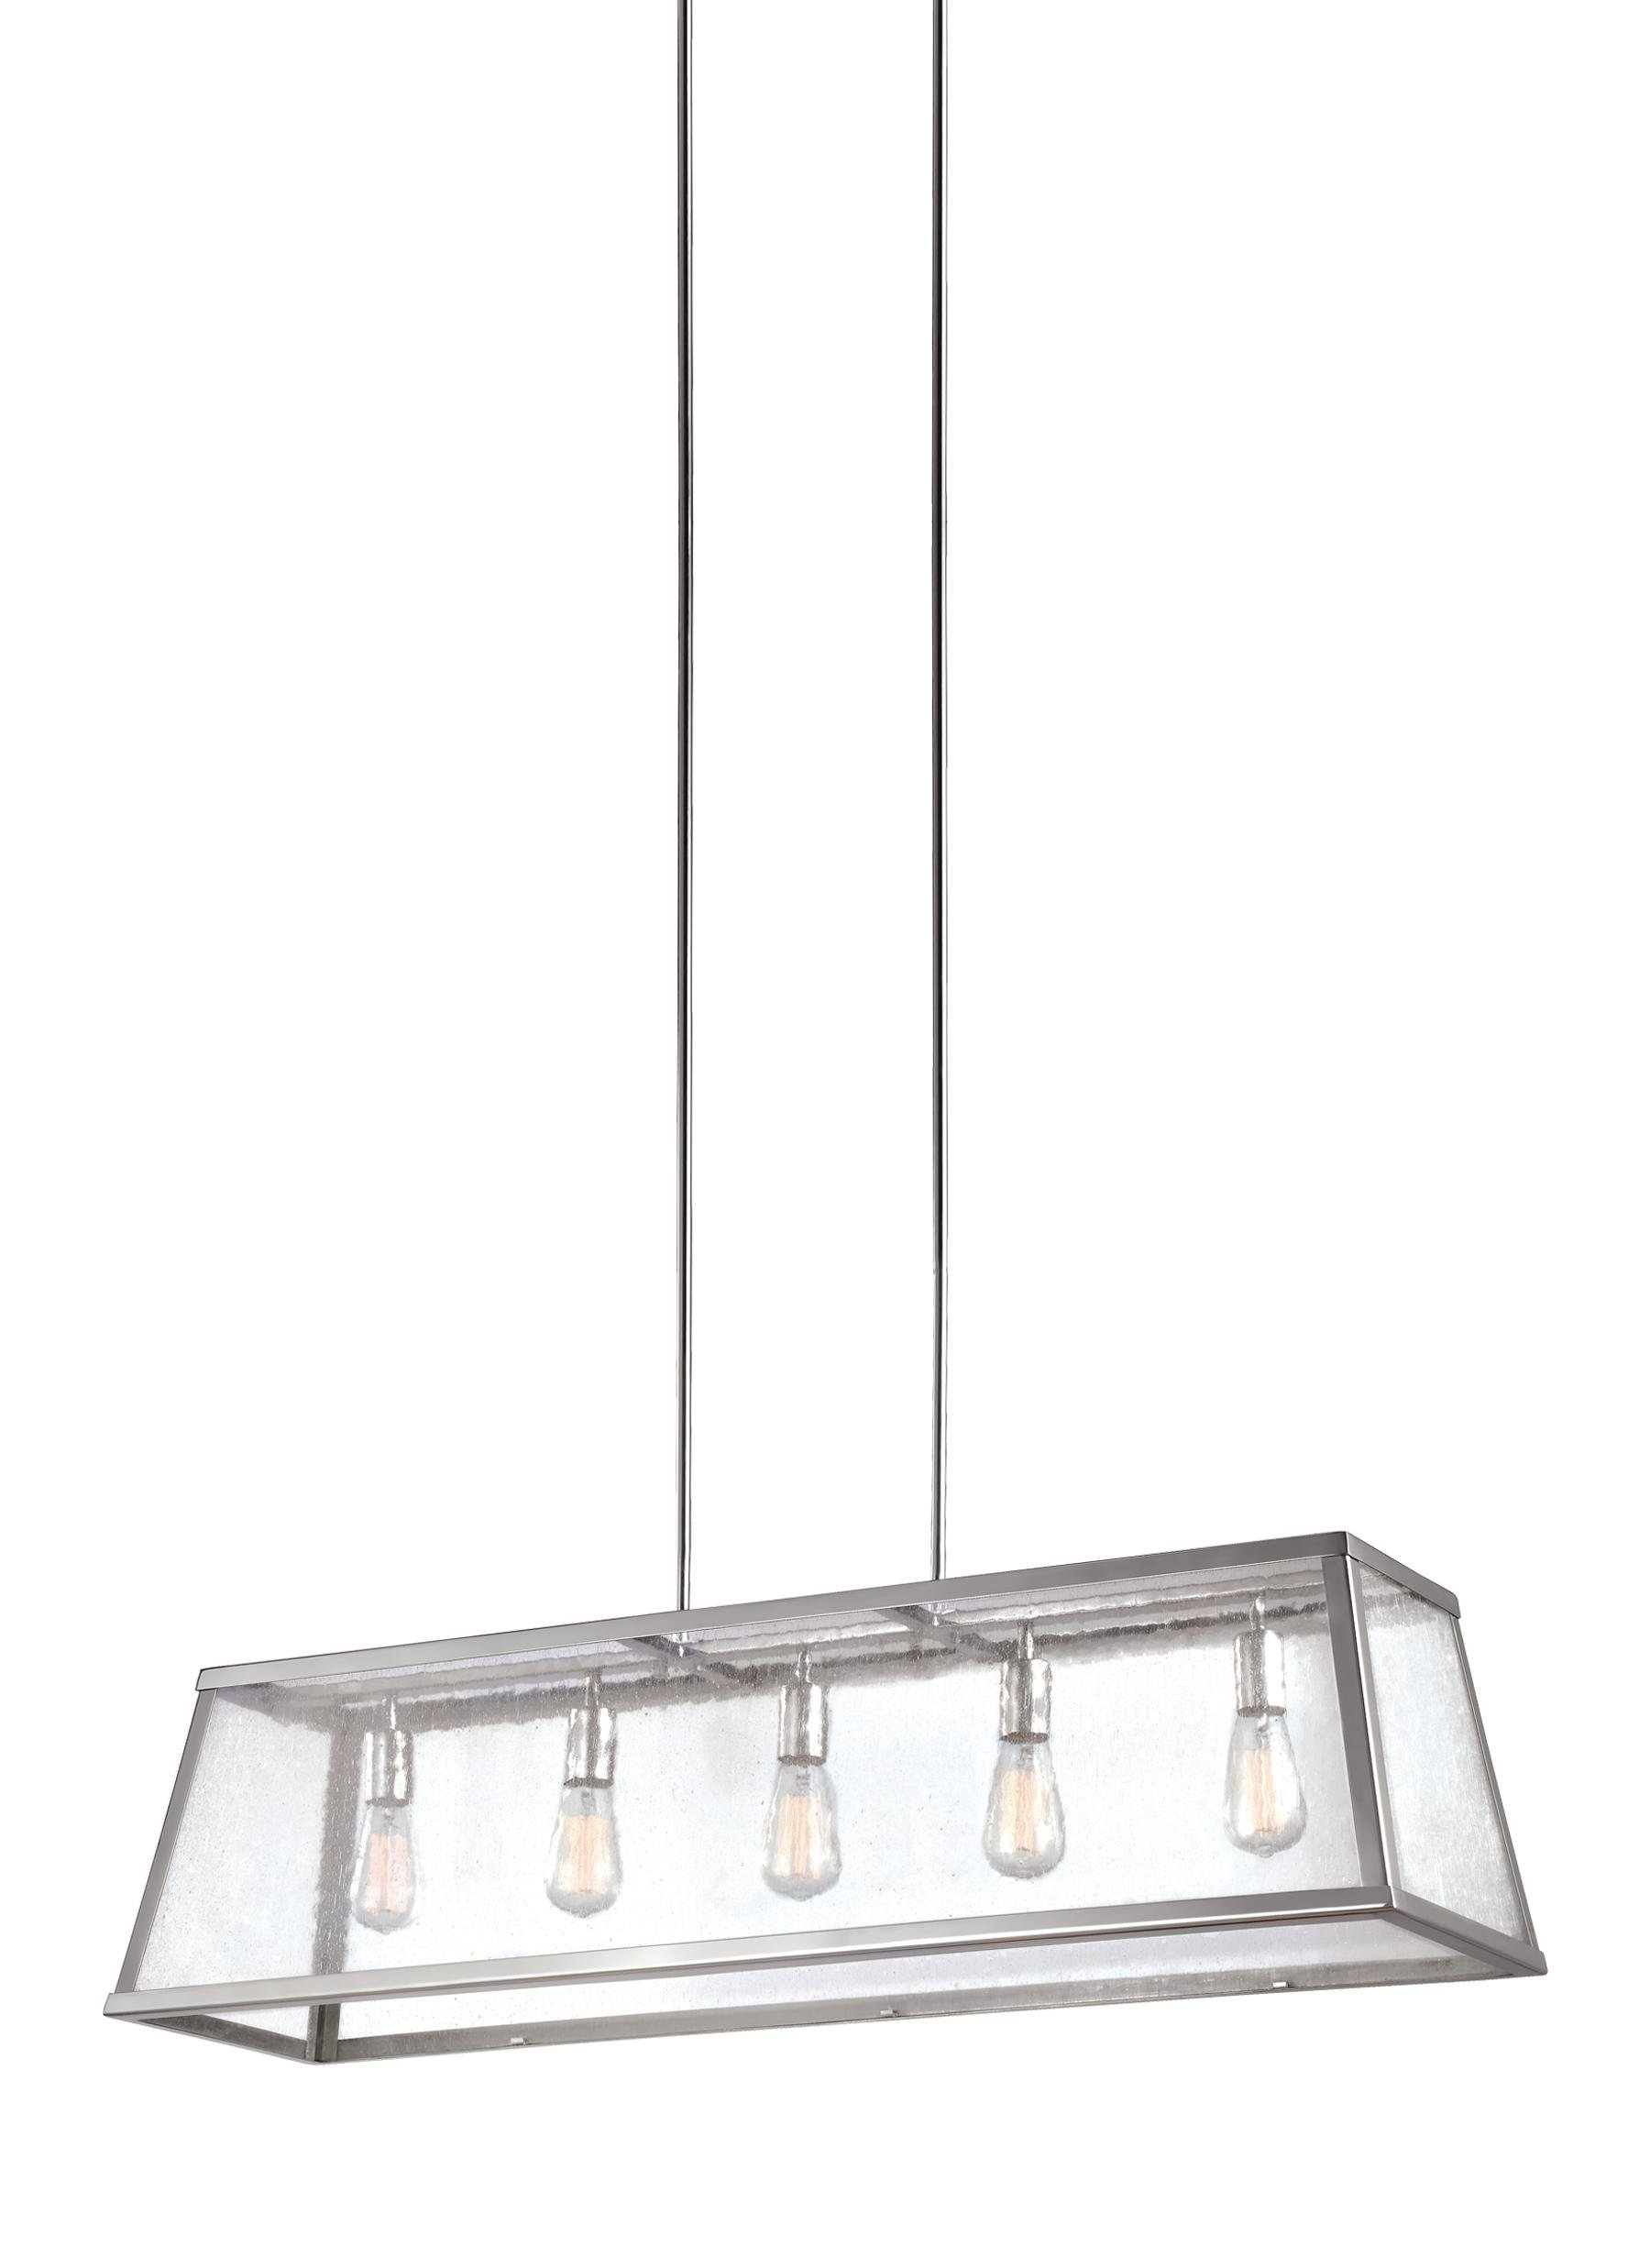 Latest Hinerman 5 Light Kitchen Island Pendants Pertaining To Marlowe 5 Light Kitchen Island Linear Pendant (View 12 of 25)